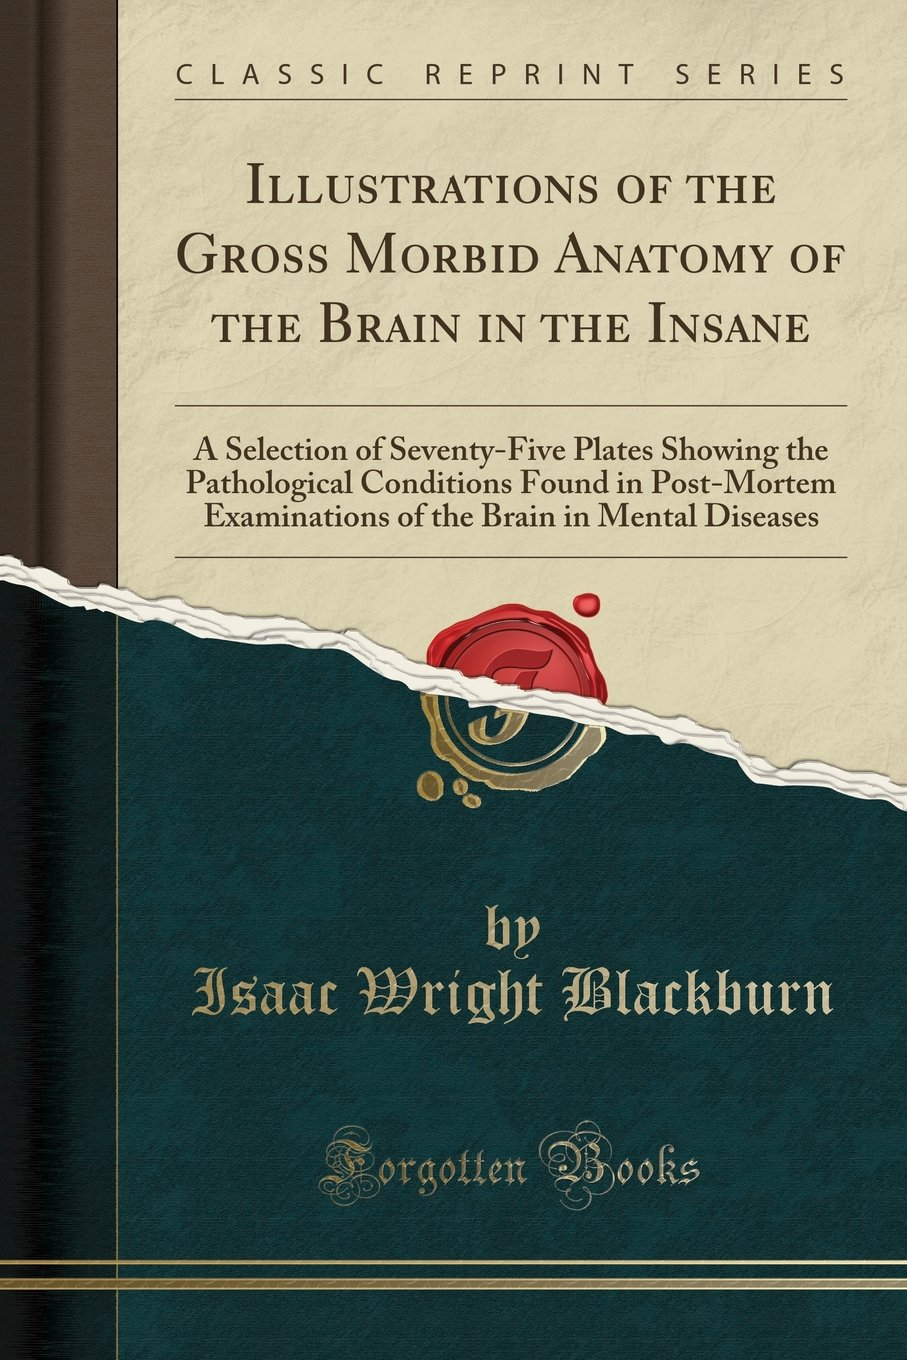 Illustrations of the Gross Morbid Anatomy of the Brain in the Insane ...